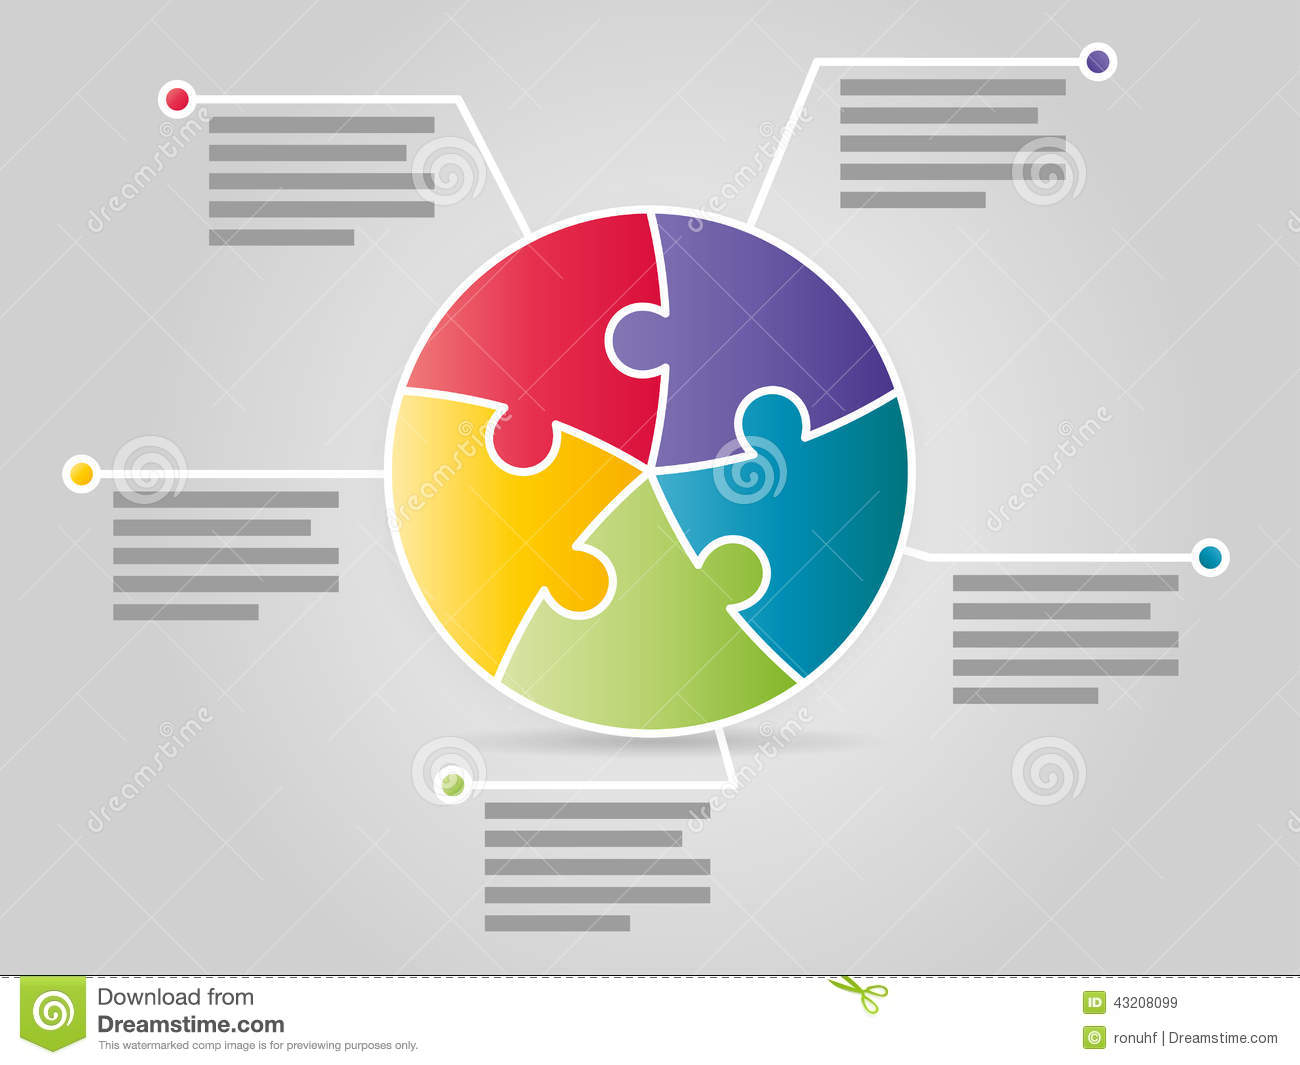 Colorful Five Sided Circle Puzzle Presentation Infographic Template Communication Comparison